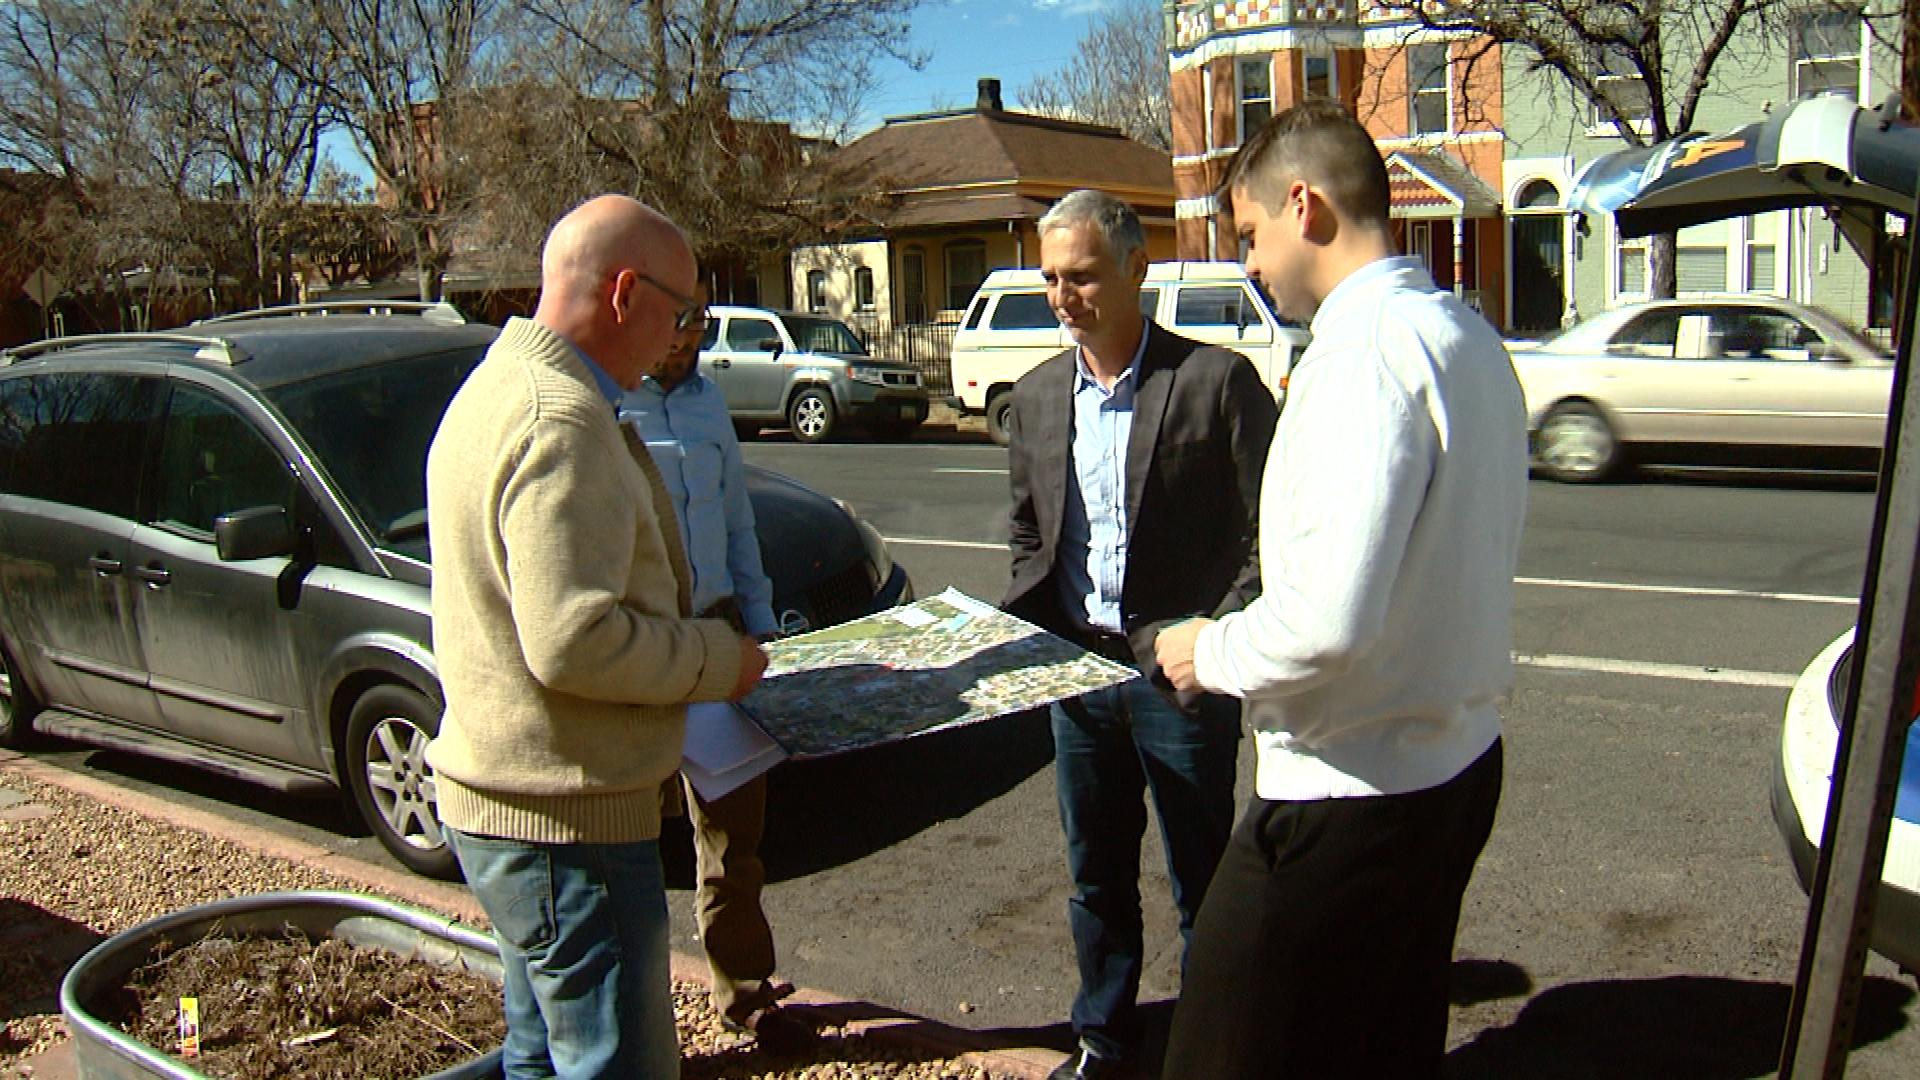 Concerned neighbors are interviewed by CBS4's Mark Taylor (credit: CBS)